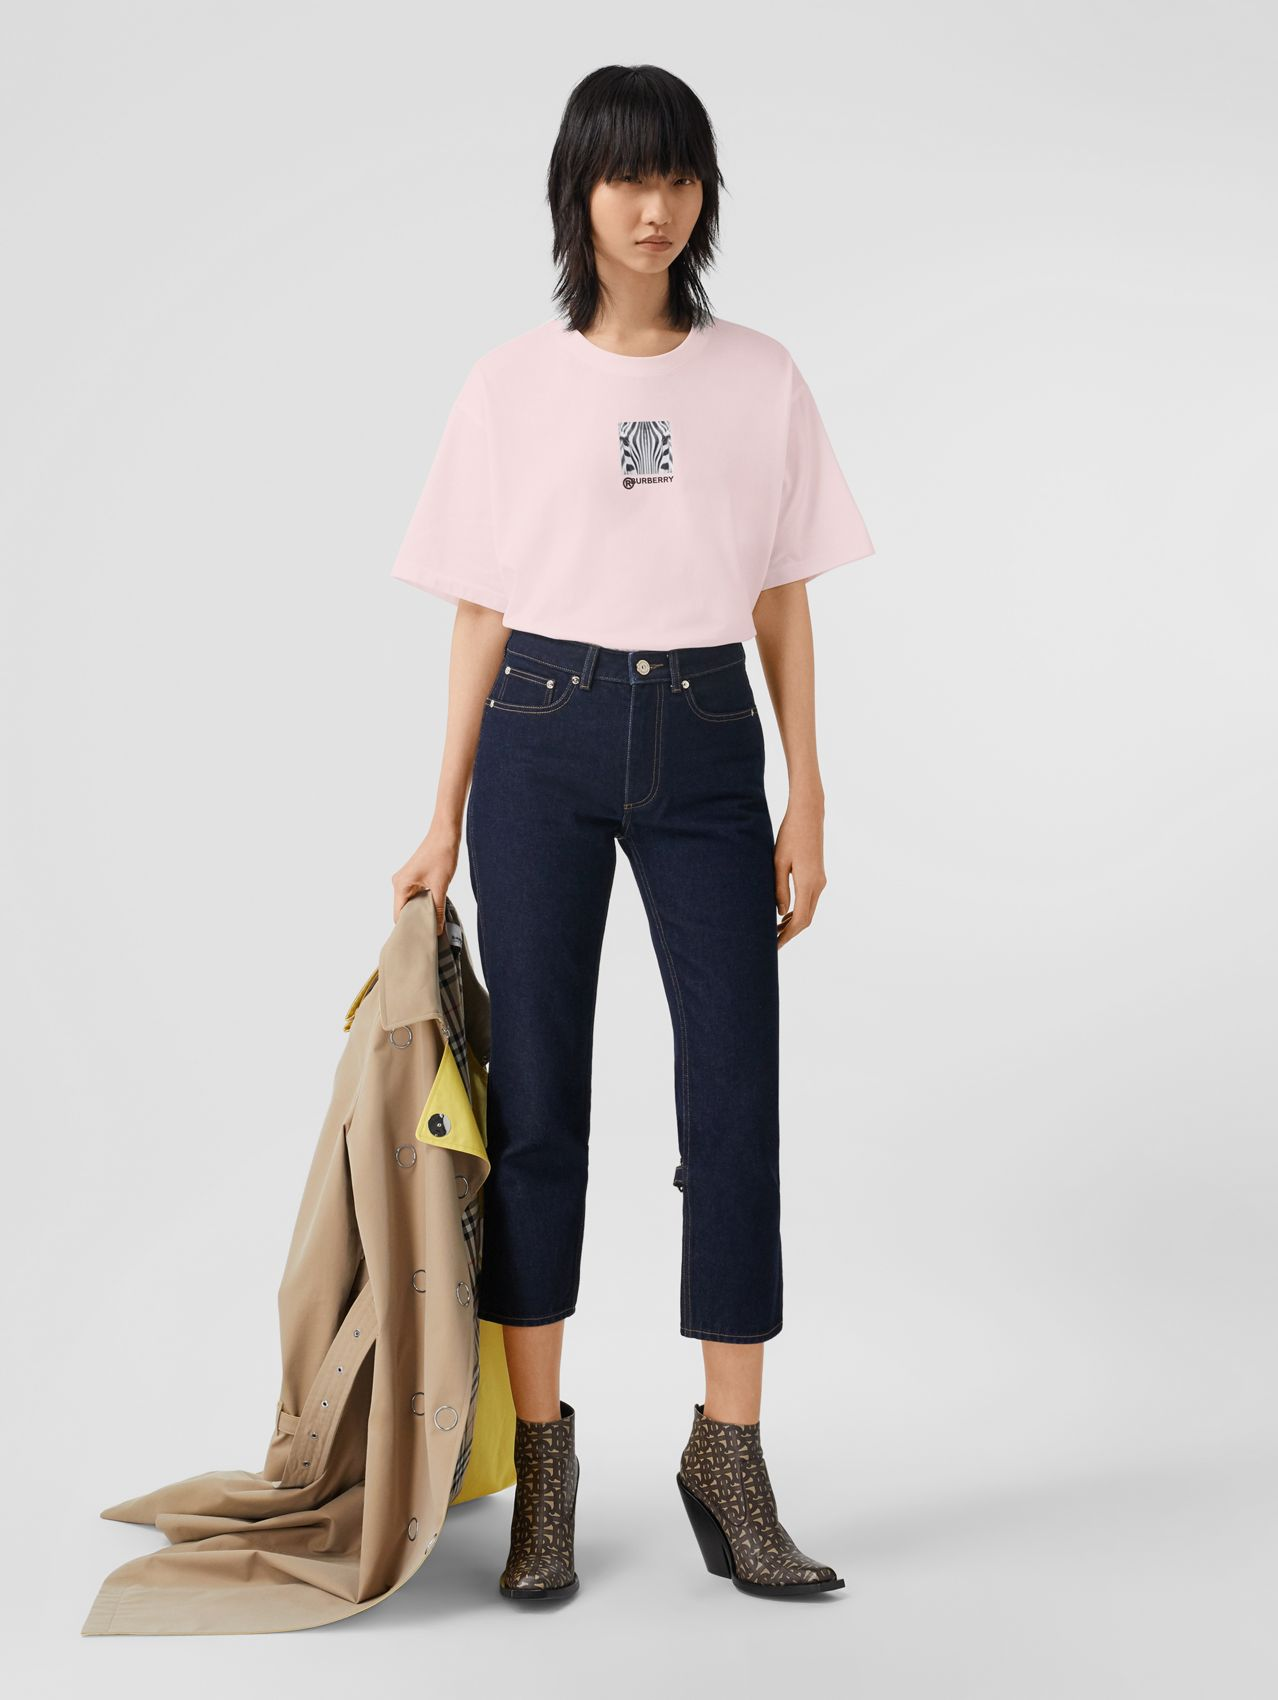 Montage Print Cotton Oversized T-shirt (Alabaster Pink)